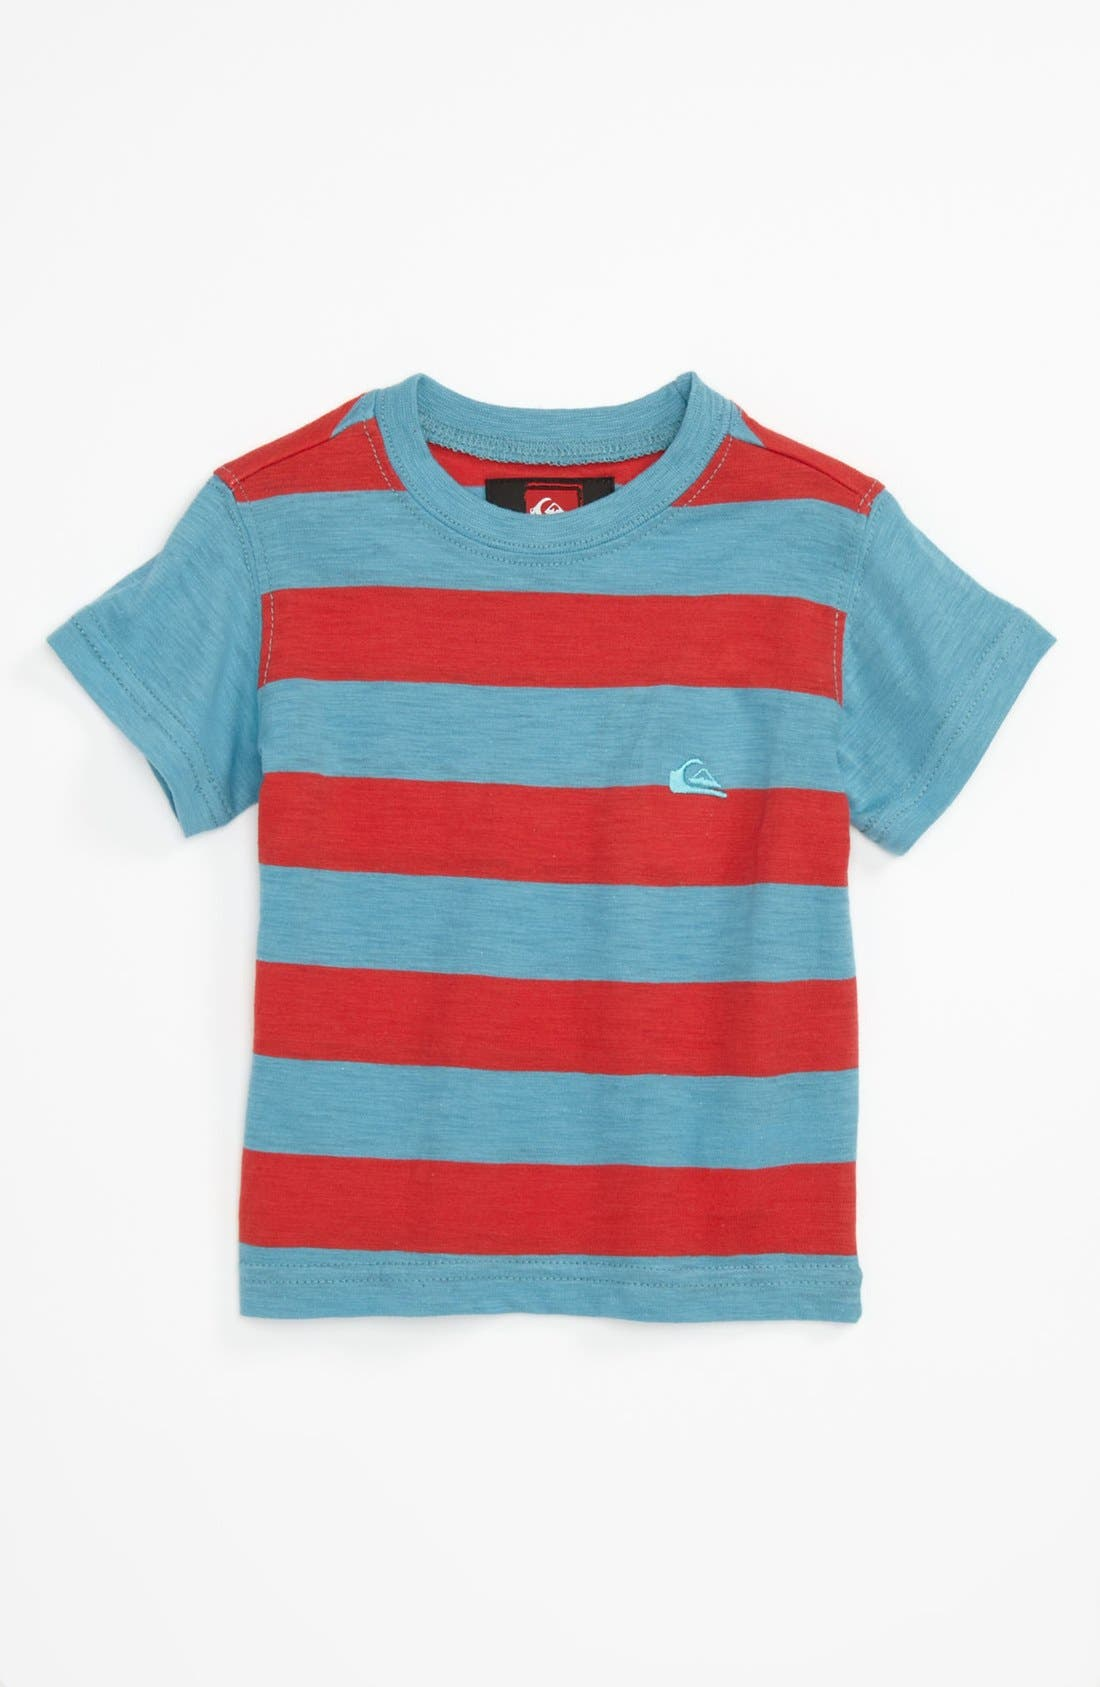 Main Image - Quiksilver 'Zebra Juice' T-Shirt (Toddler)